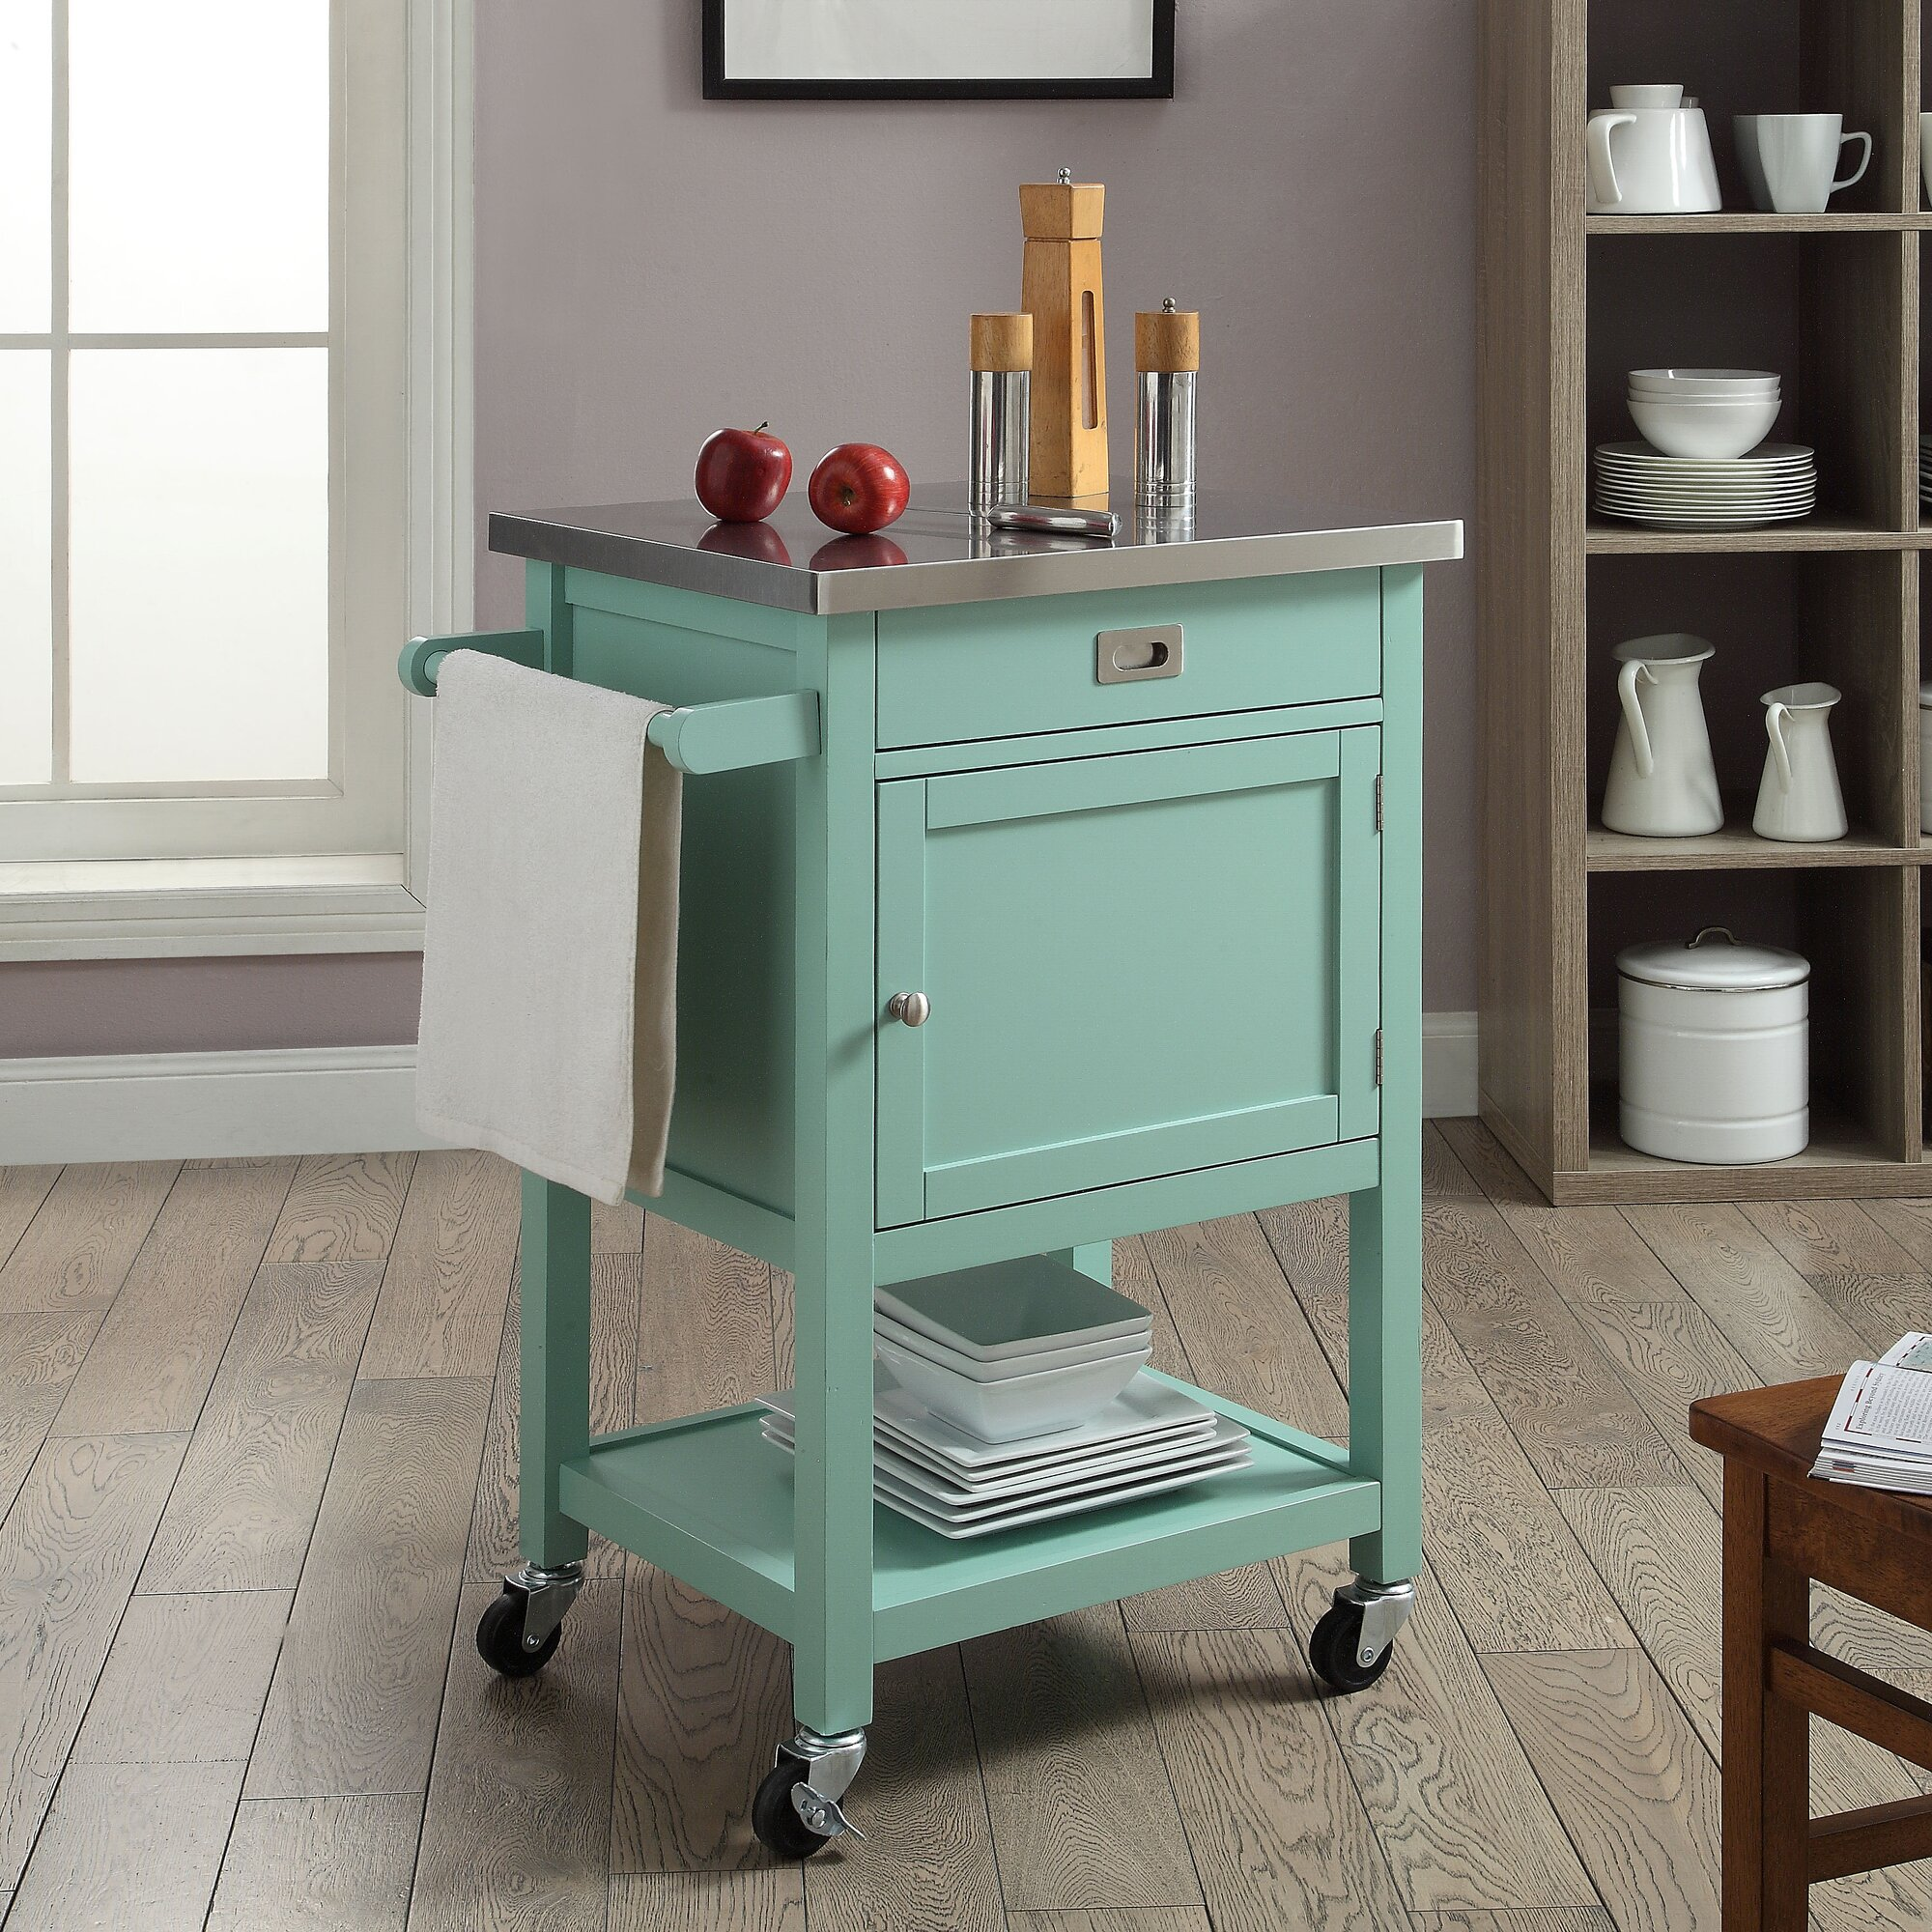 Cocina Kitchen Cart With Stainless Steel Top: Breakwater Bay Brookridge Kitchen Cart With Stainless